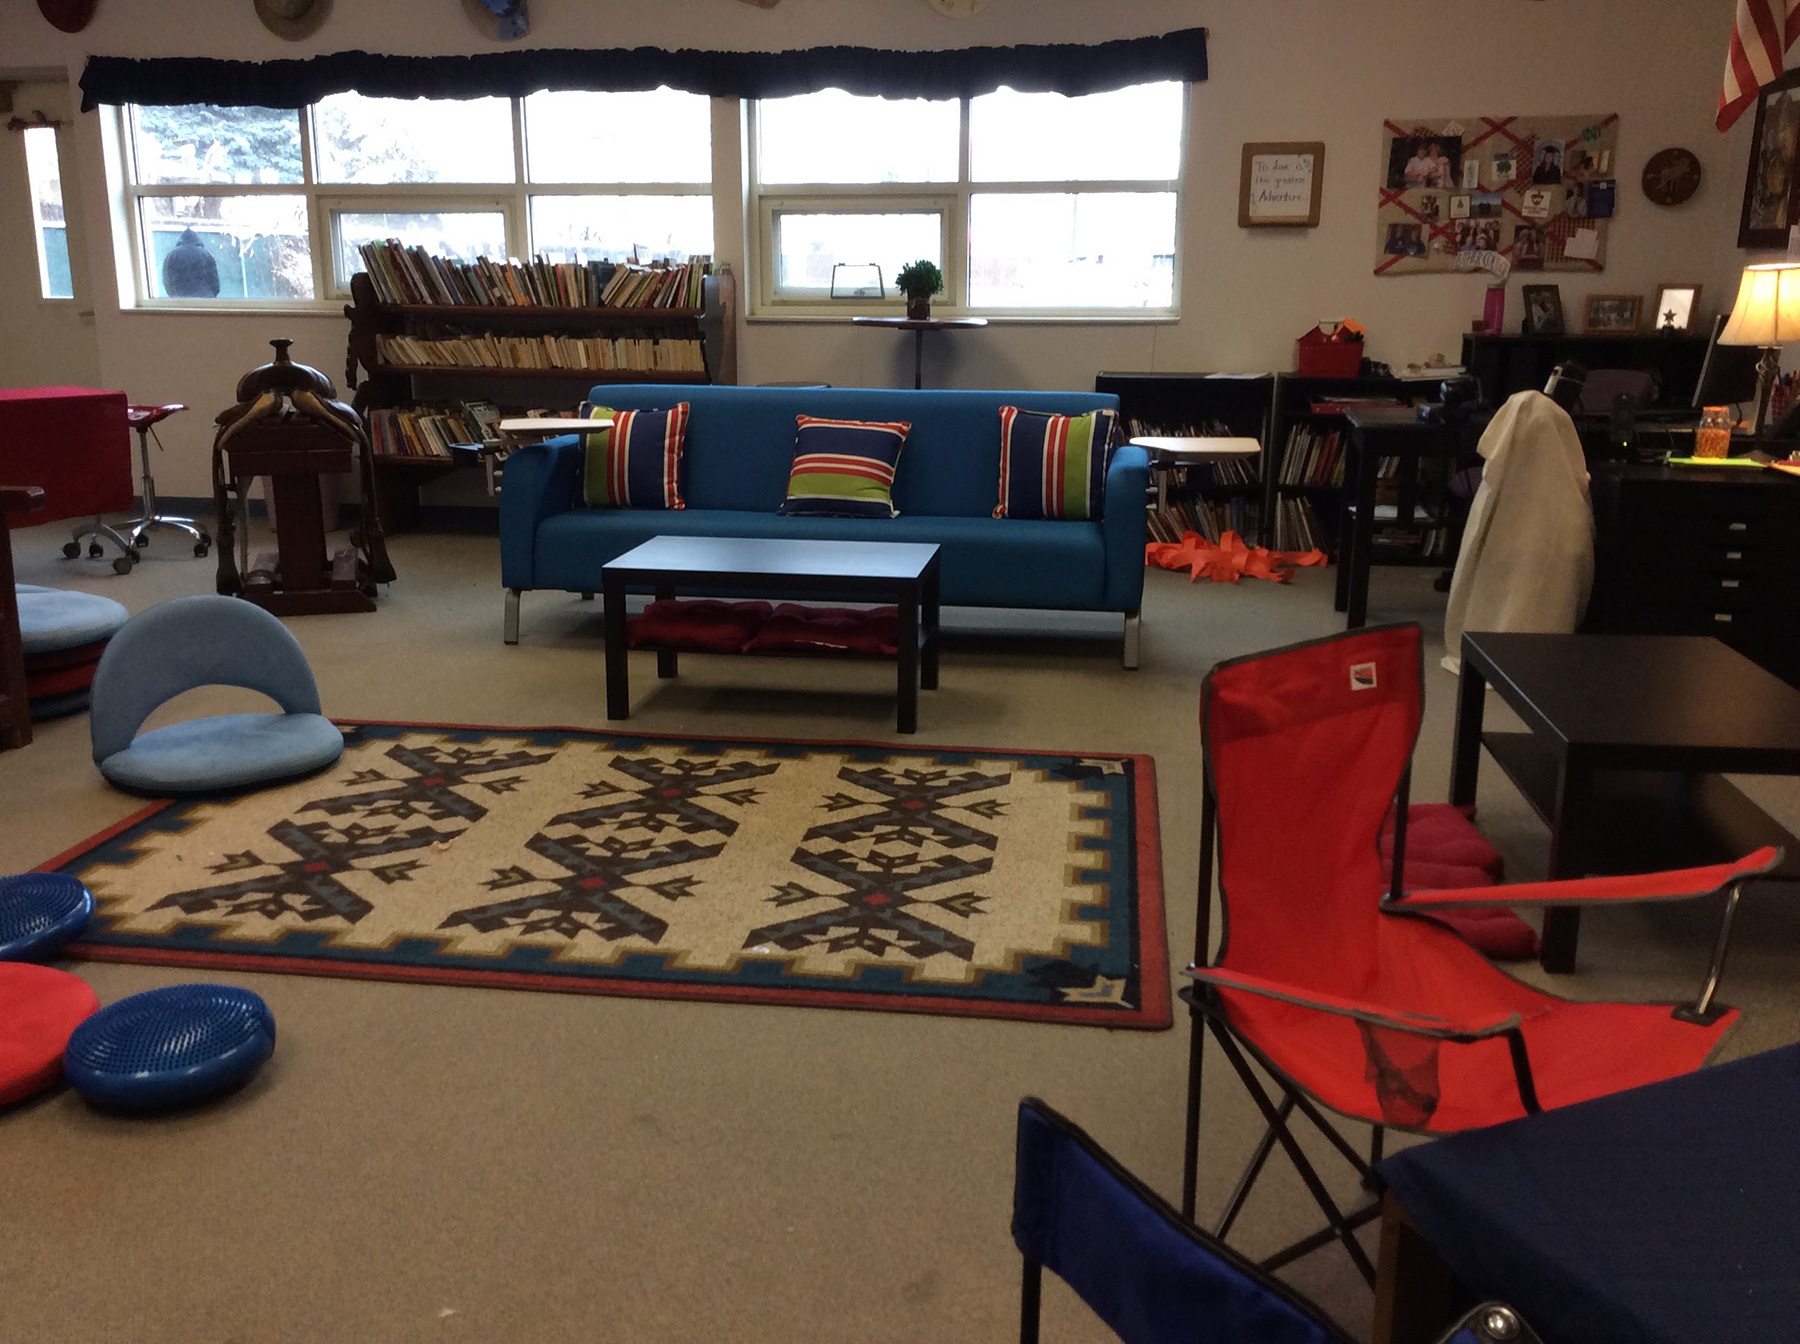 Flex Chairs Top 3 Reasons To Use Flexible Seating In Classrooms